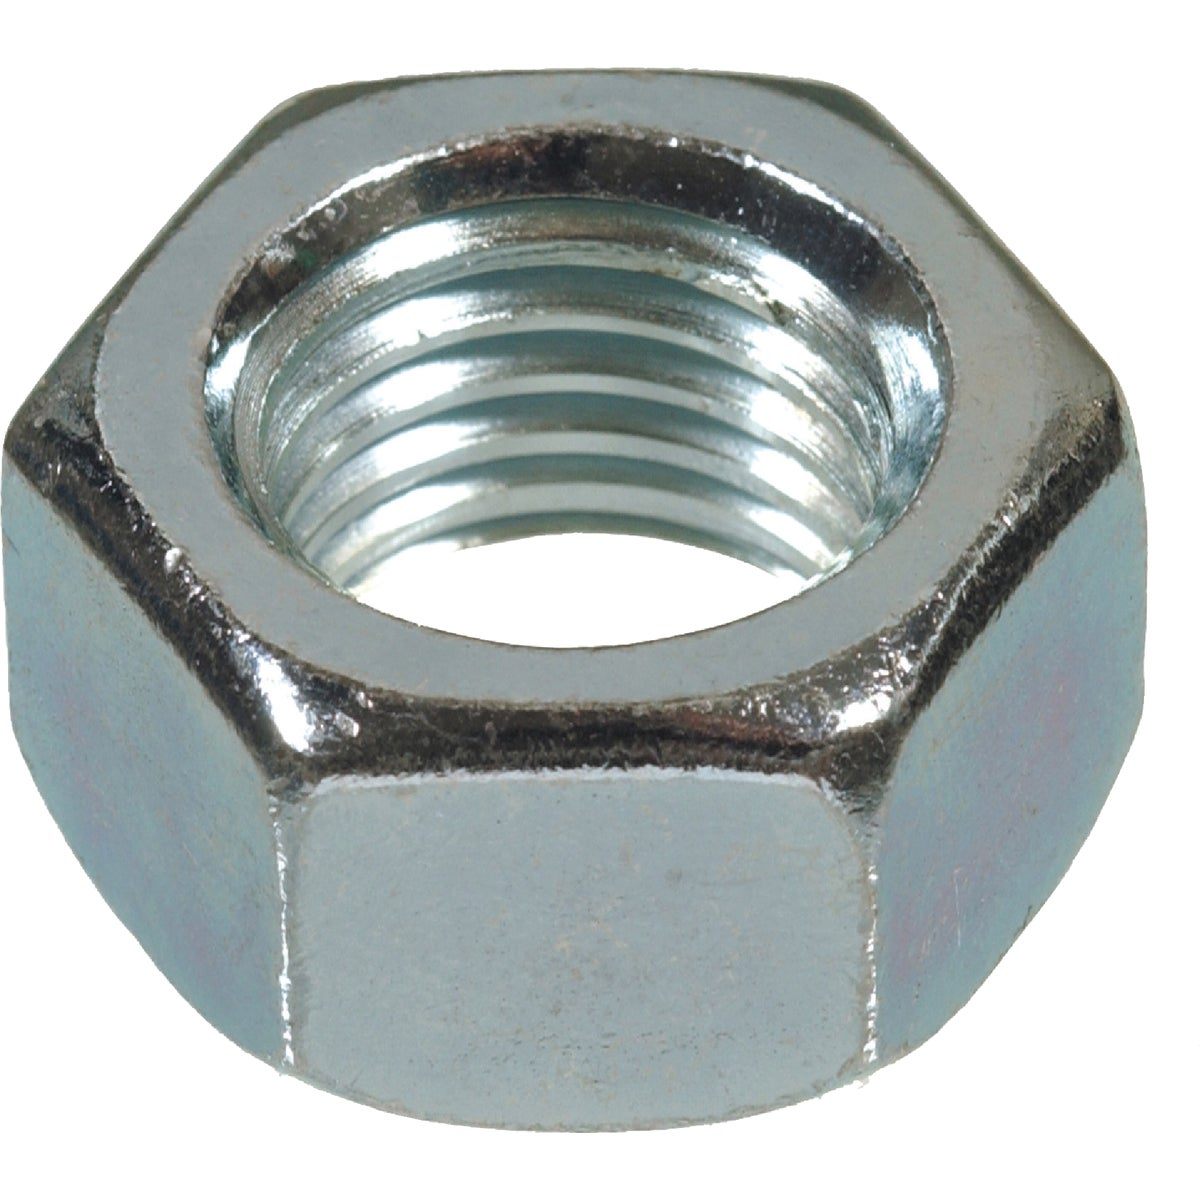 5/16-18 MACHNE SCREW NUT - 124394 by Hillman Fastener